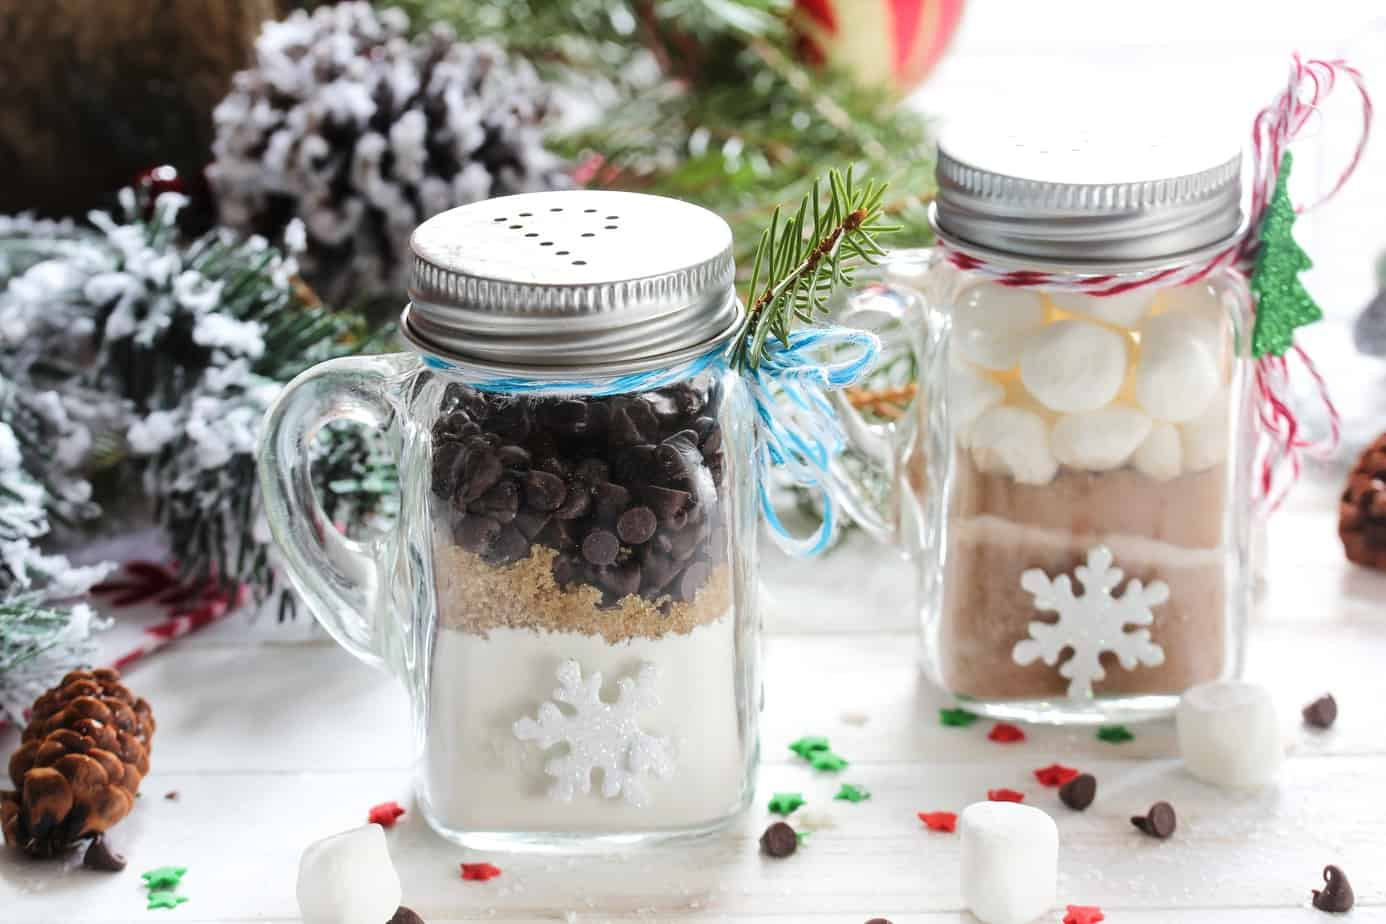 8 Frugal Dessert in a Jar Gifts to Give or Sell This Holiday - Life ...